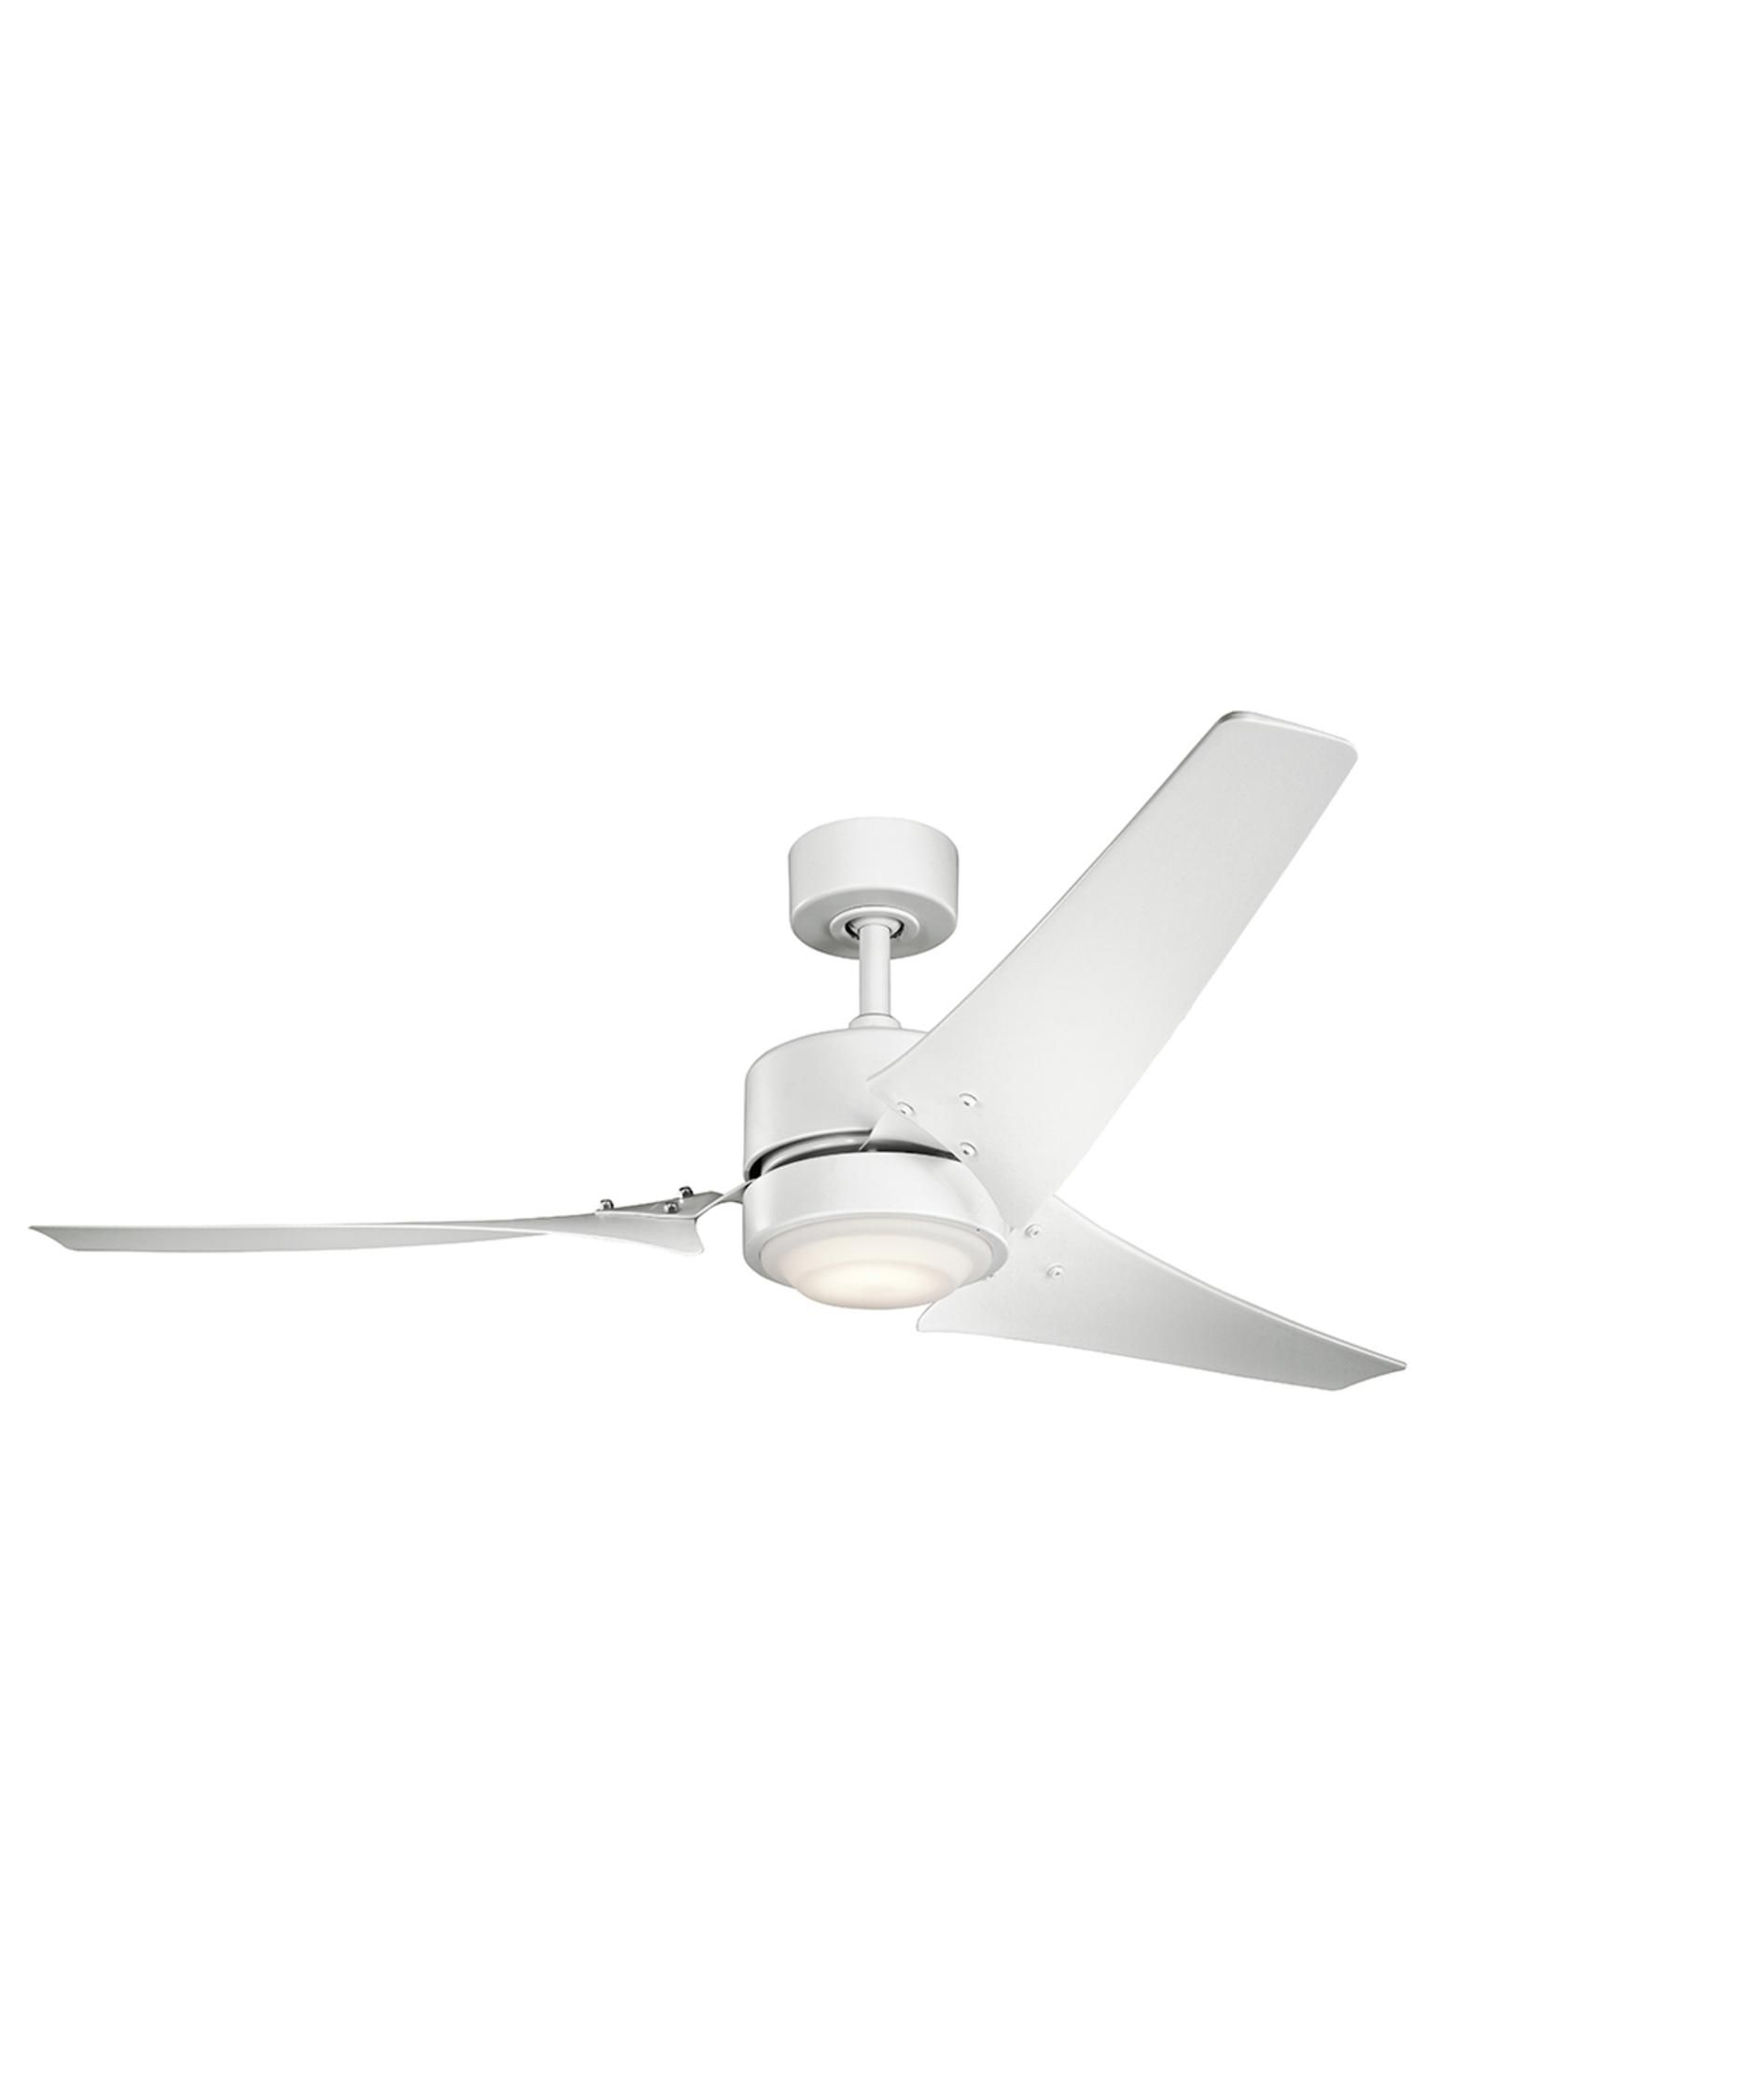 2887bc2e070 Kichler 310155 Rana Energy Smart 60 Inch Ceiling Fan With Light Kit ...